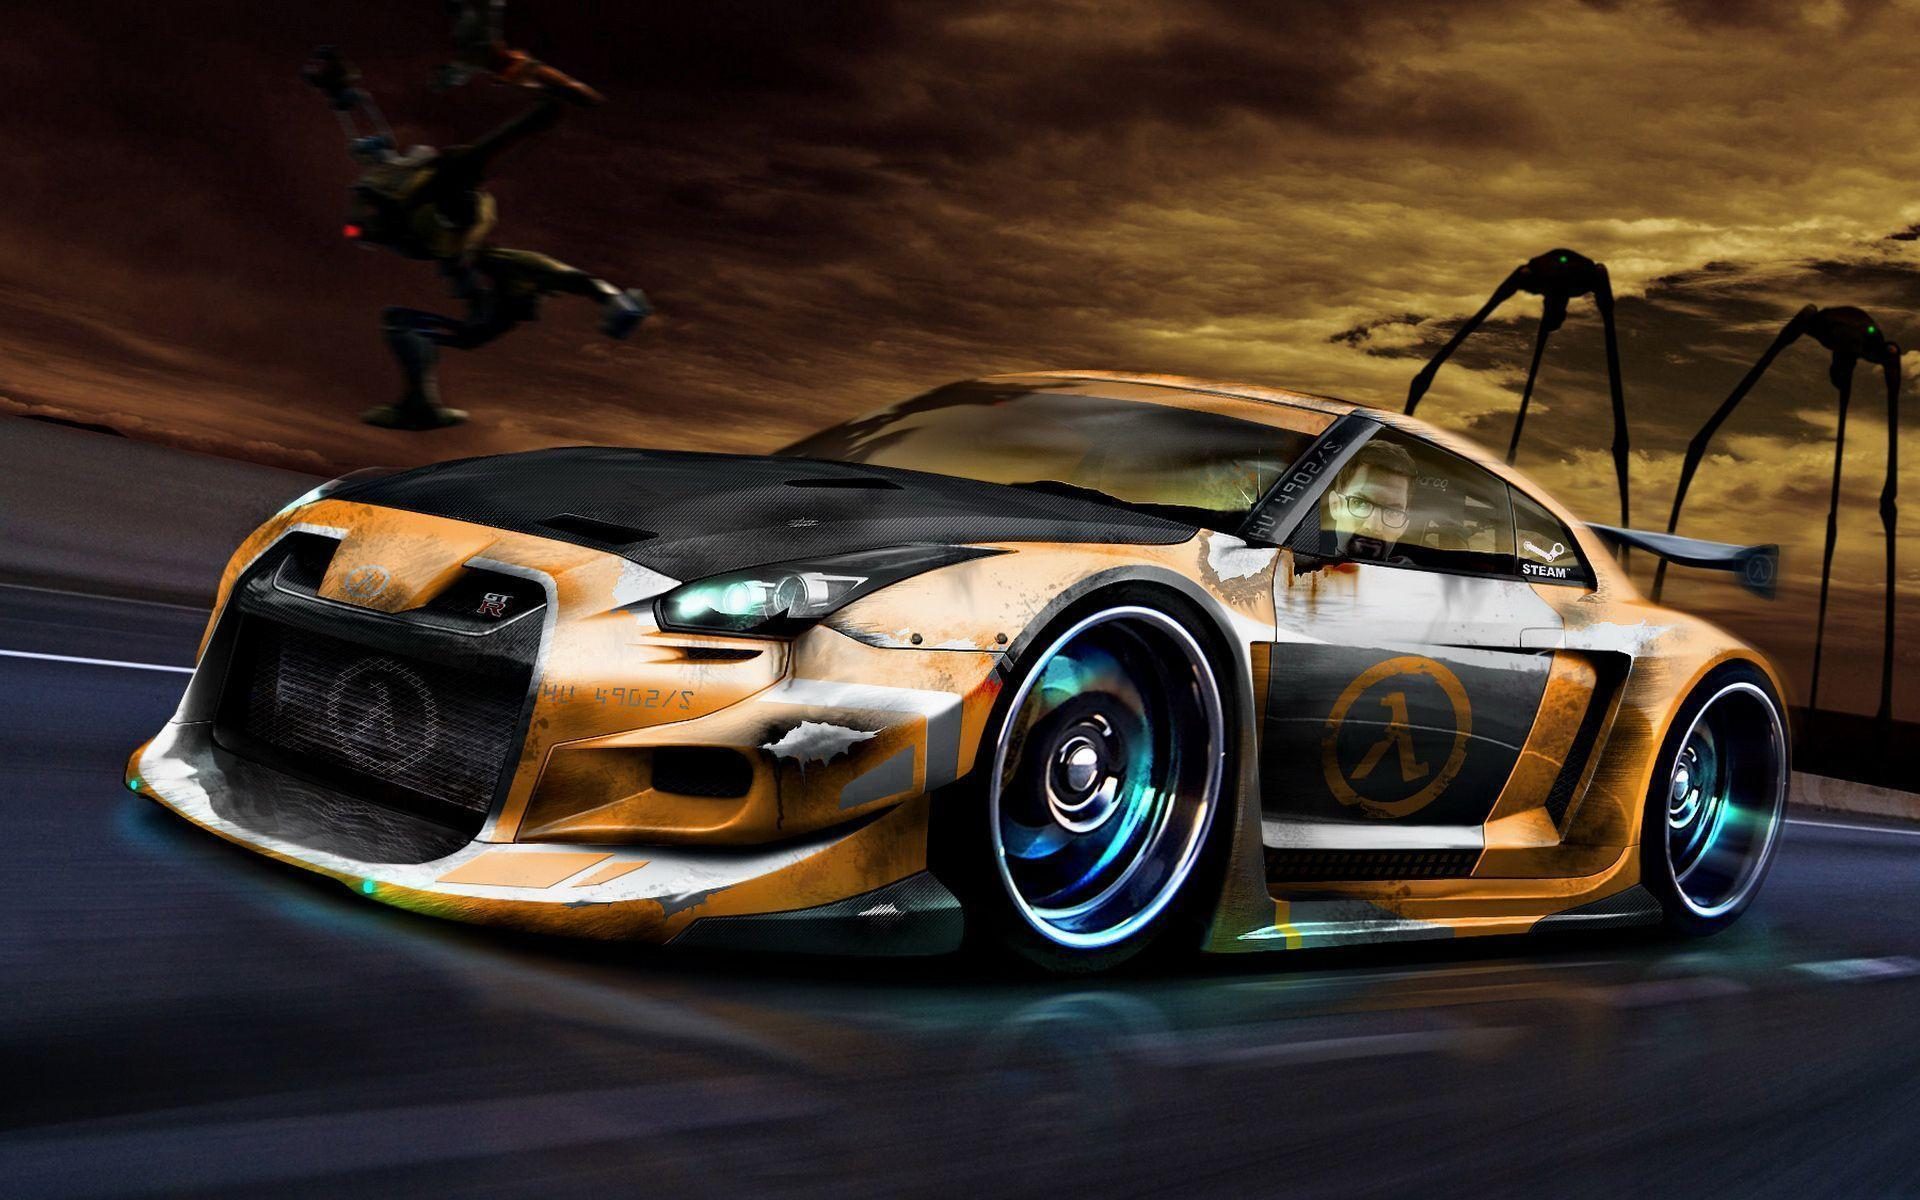 Cool Sport Cars Wallpapers - Wallpaper Cave